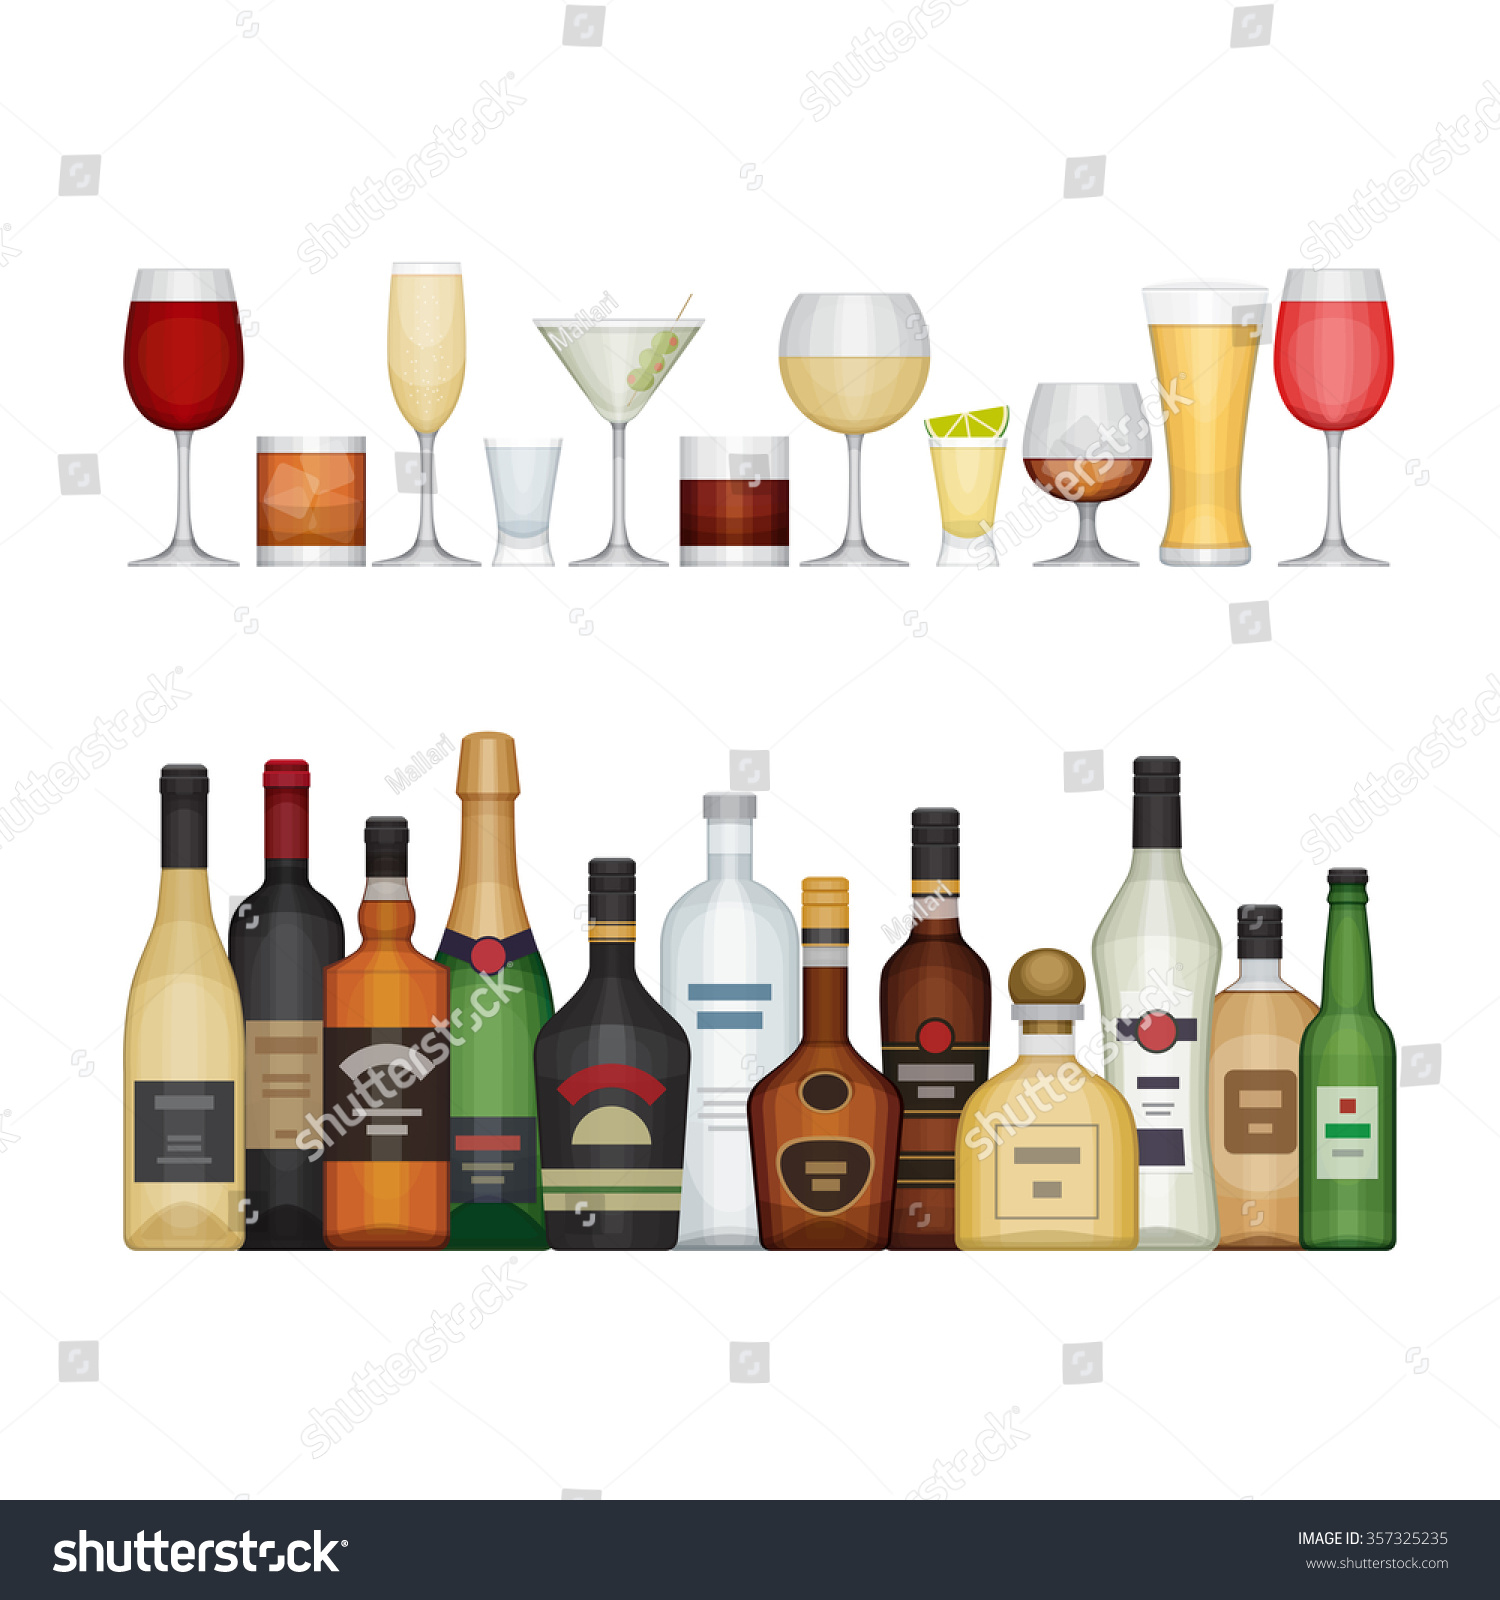 Set Different Alcohol Bottle Glasses Alcohol Stock Vector